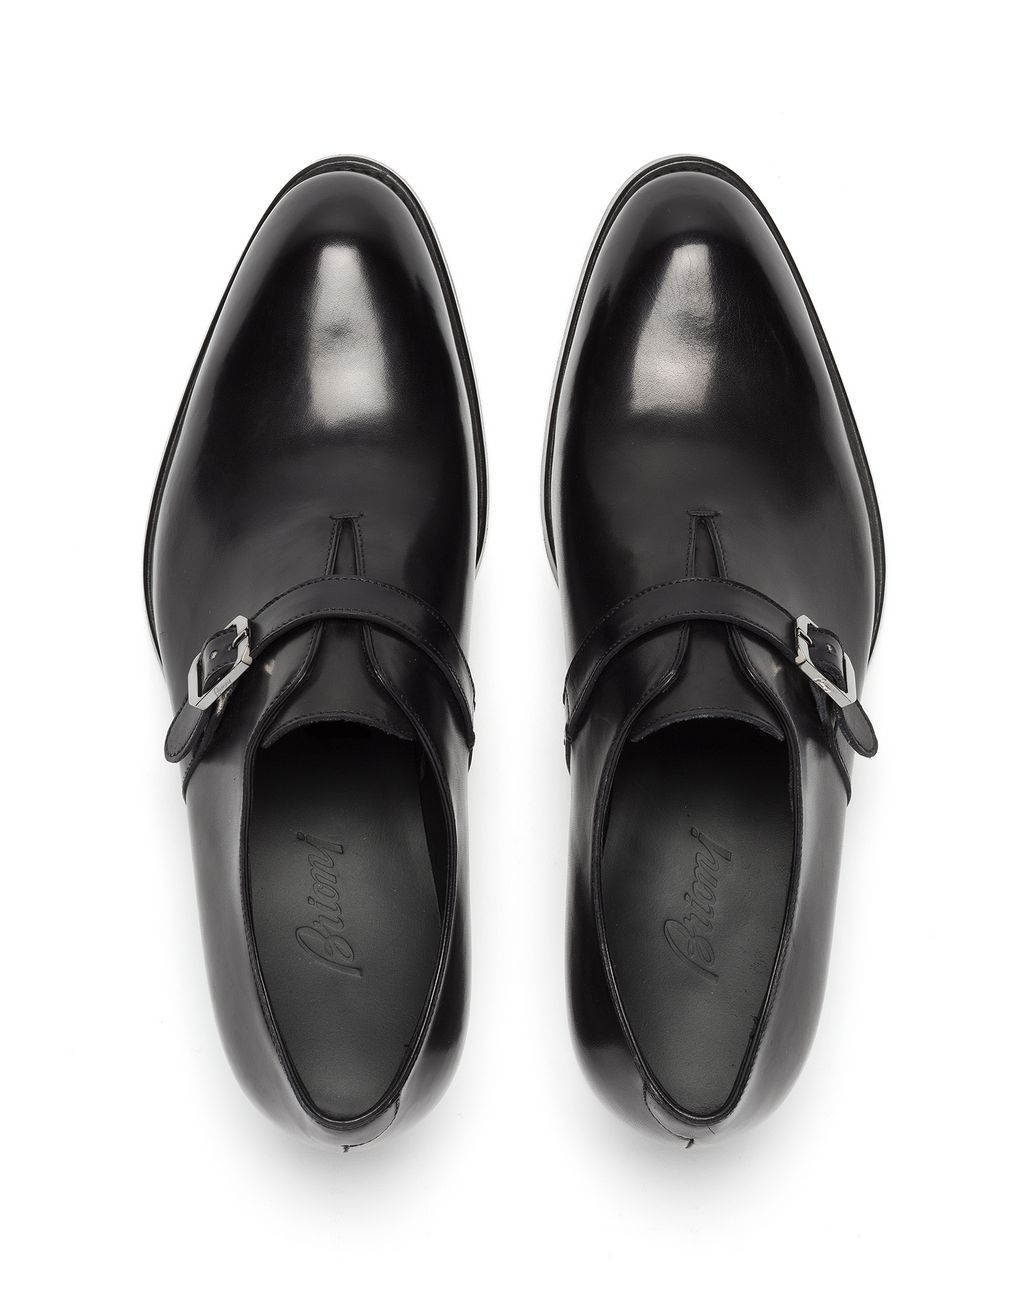 01fece314 Brioni Men's Formal Shoes: discover the latest collection and shop ...